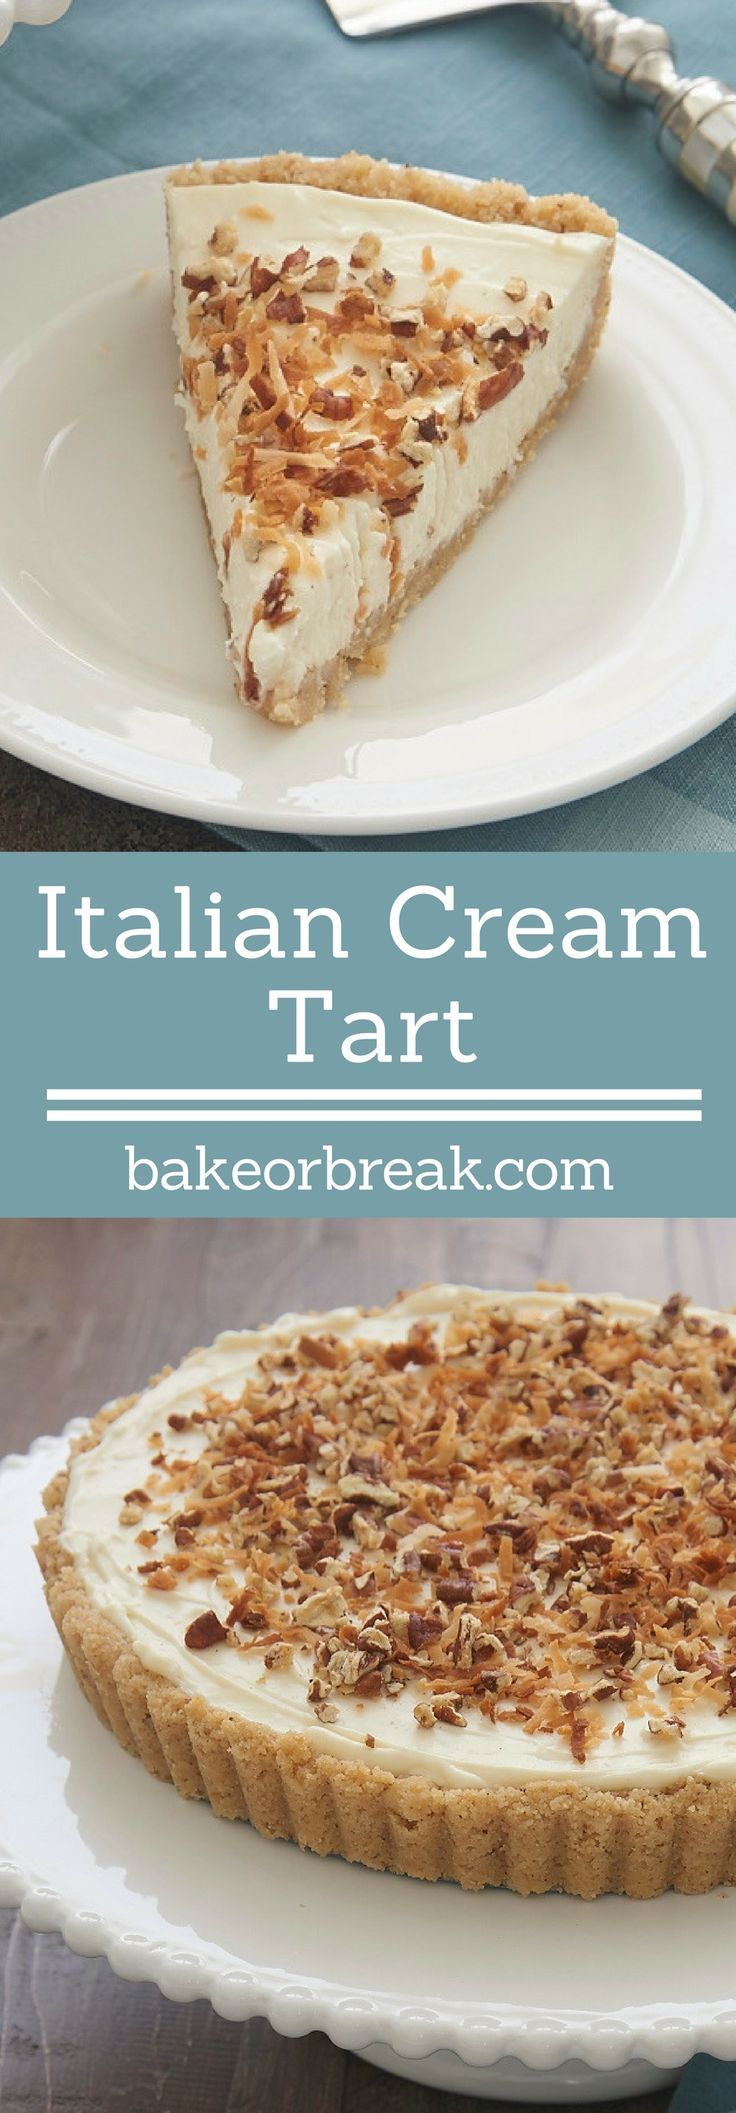 Coconut, pecans, and cream cheese are an irresistible tasty trio in this almost-no-bake Italian Cream Tart! - Bake or Break ~ http://www.bakeorbreak.com